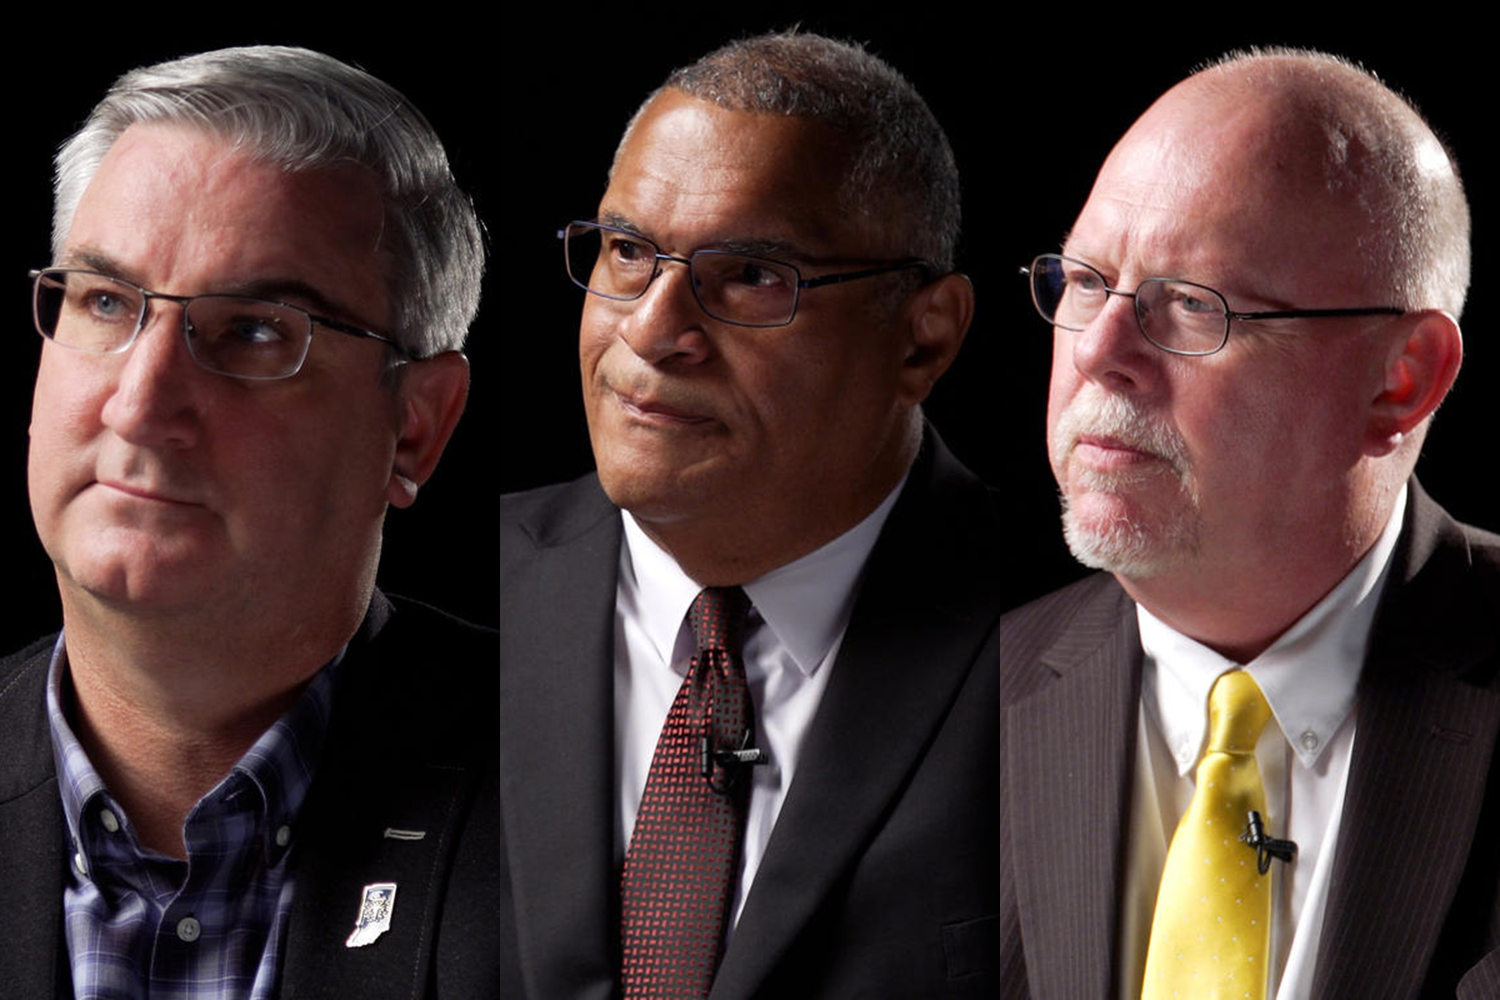 (L-R) Gov. Eric Holcomb (R), Dr. Woody Myers (D) and Donald Rainwater (L).